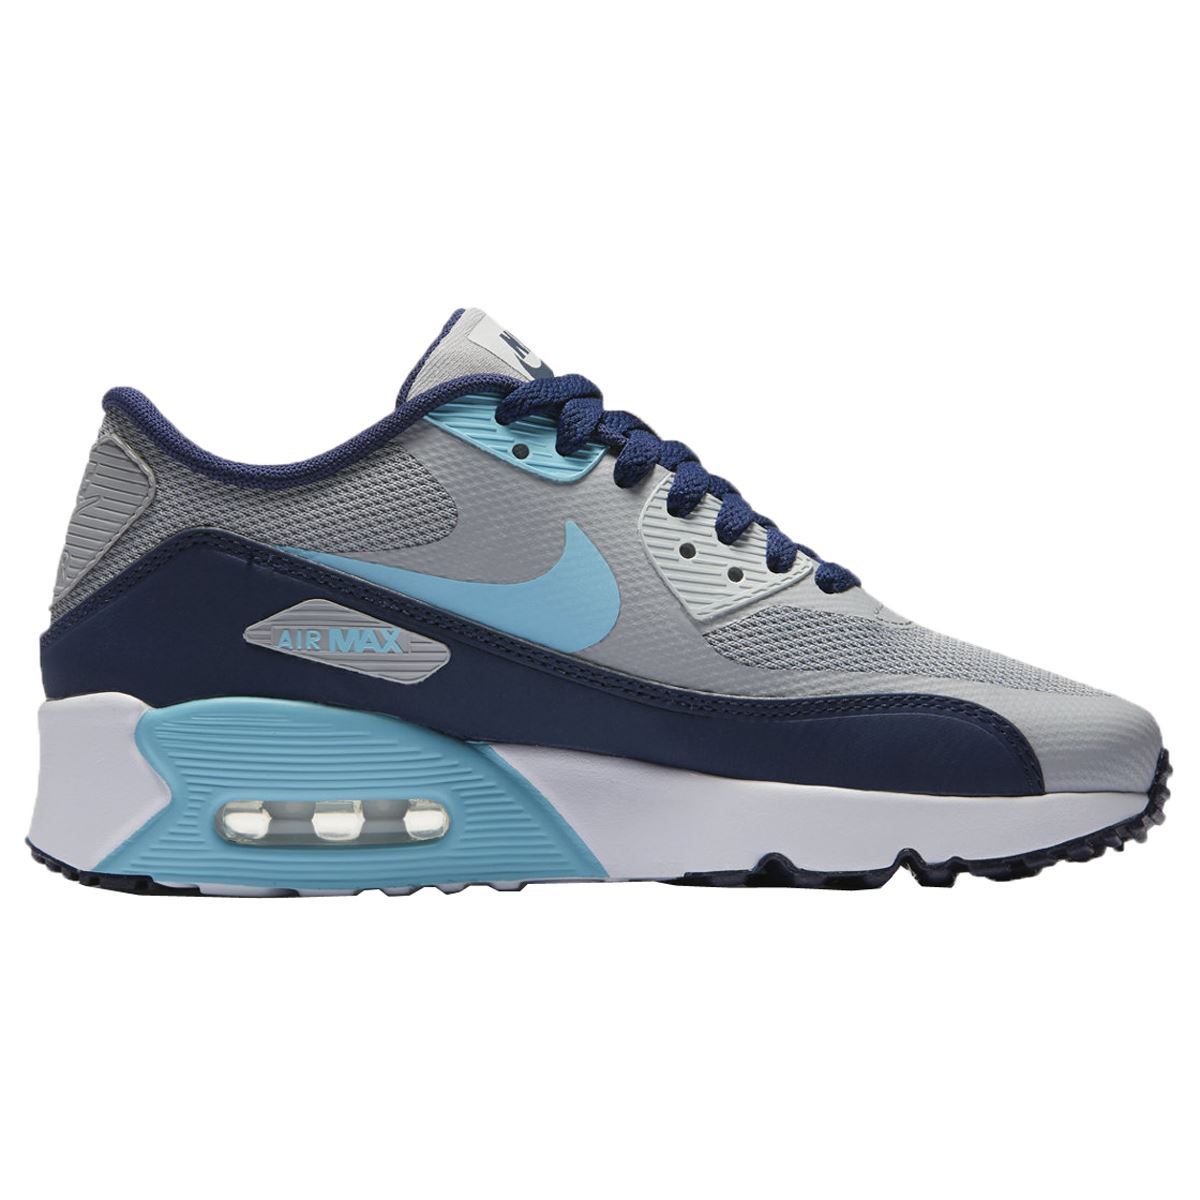 401d2343df Description: The white and blue Nike Air Max 90 Ultra 2.0 kids trainers ...